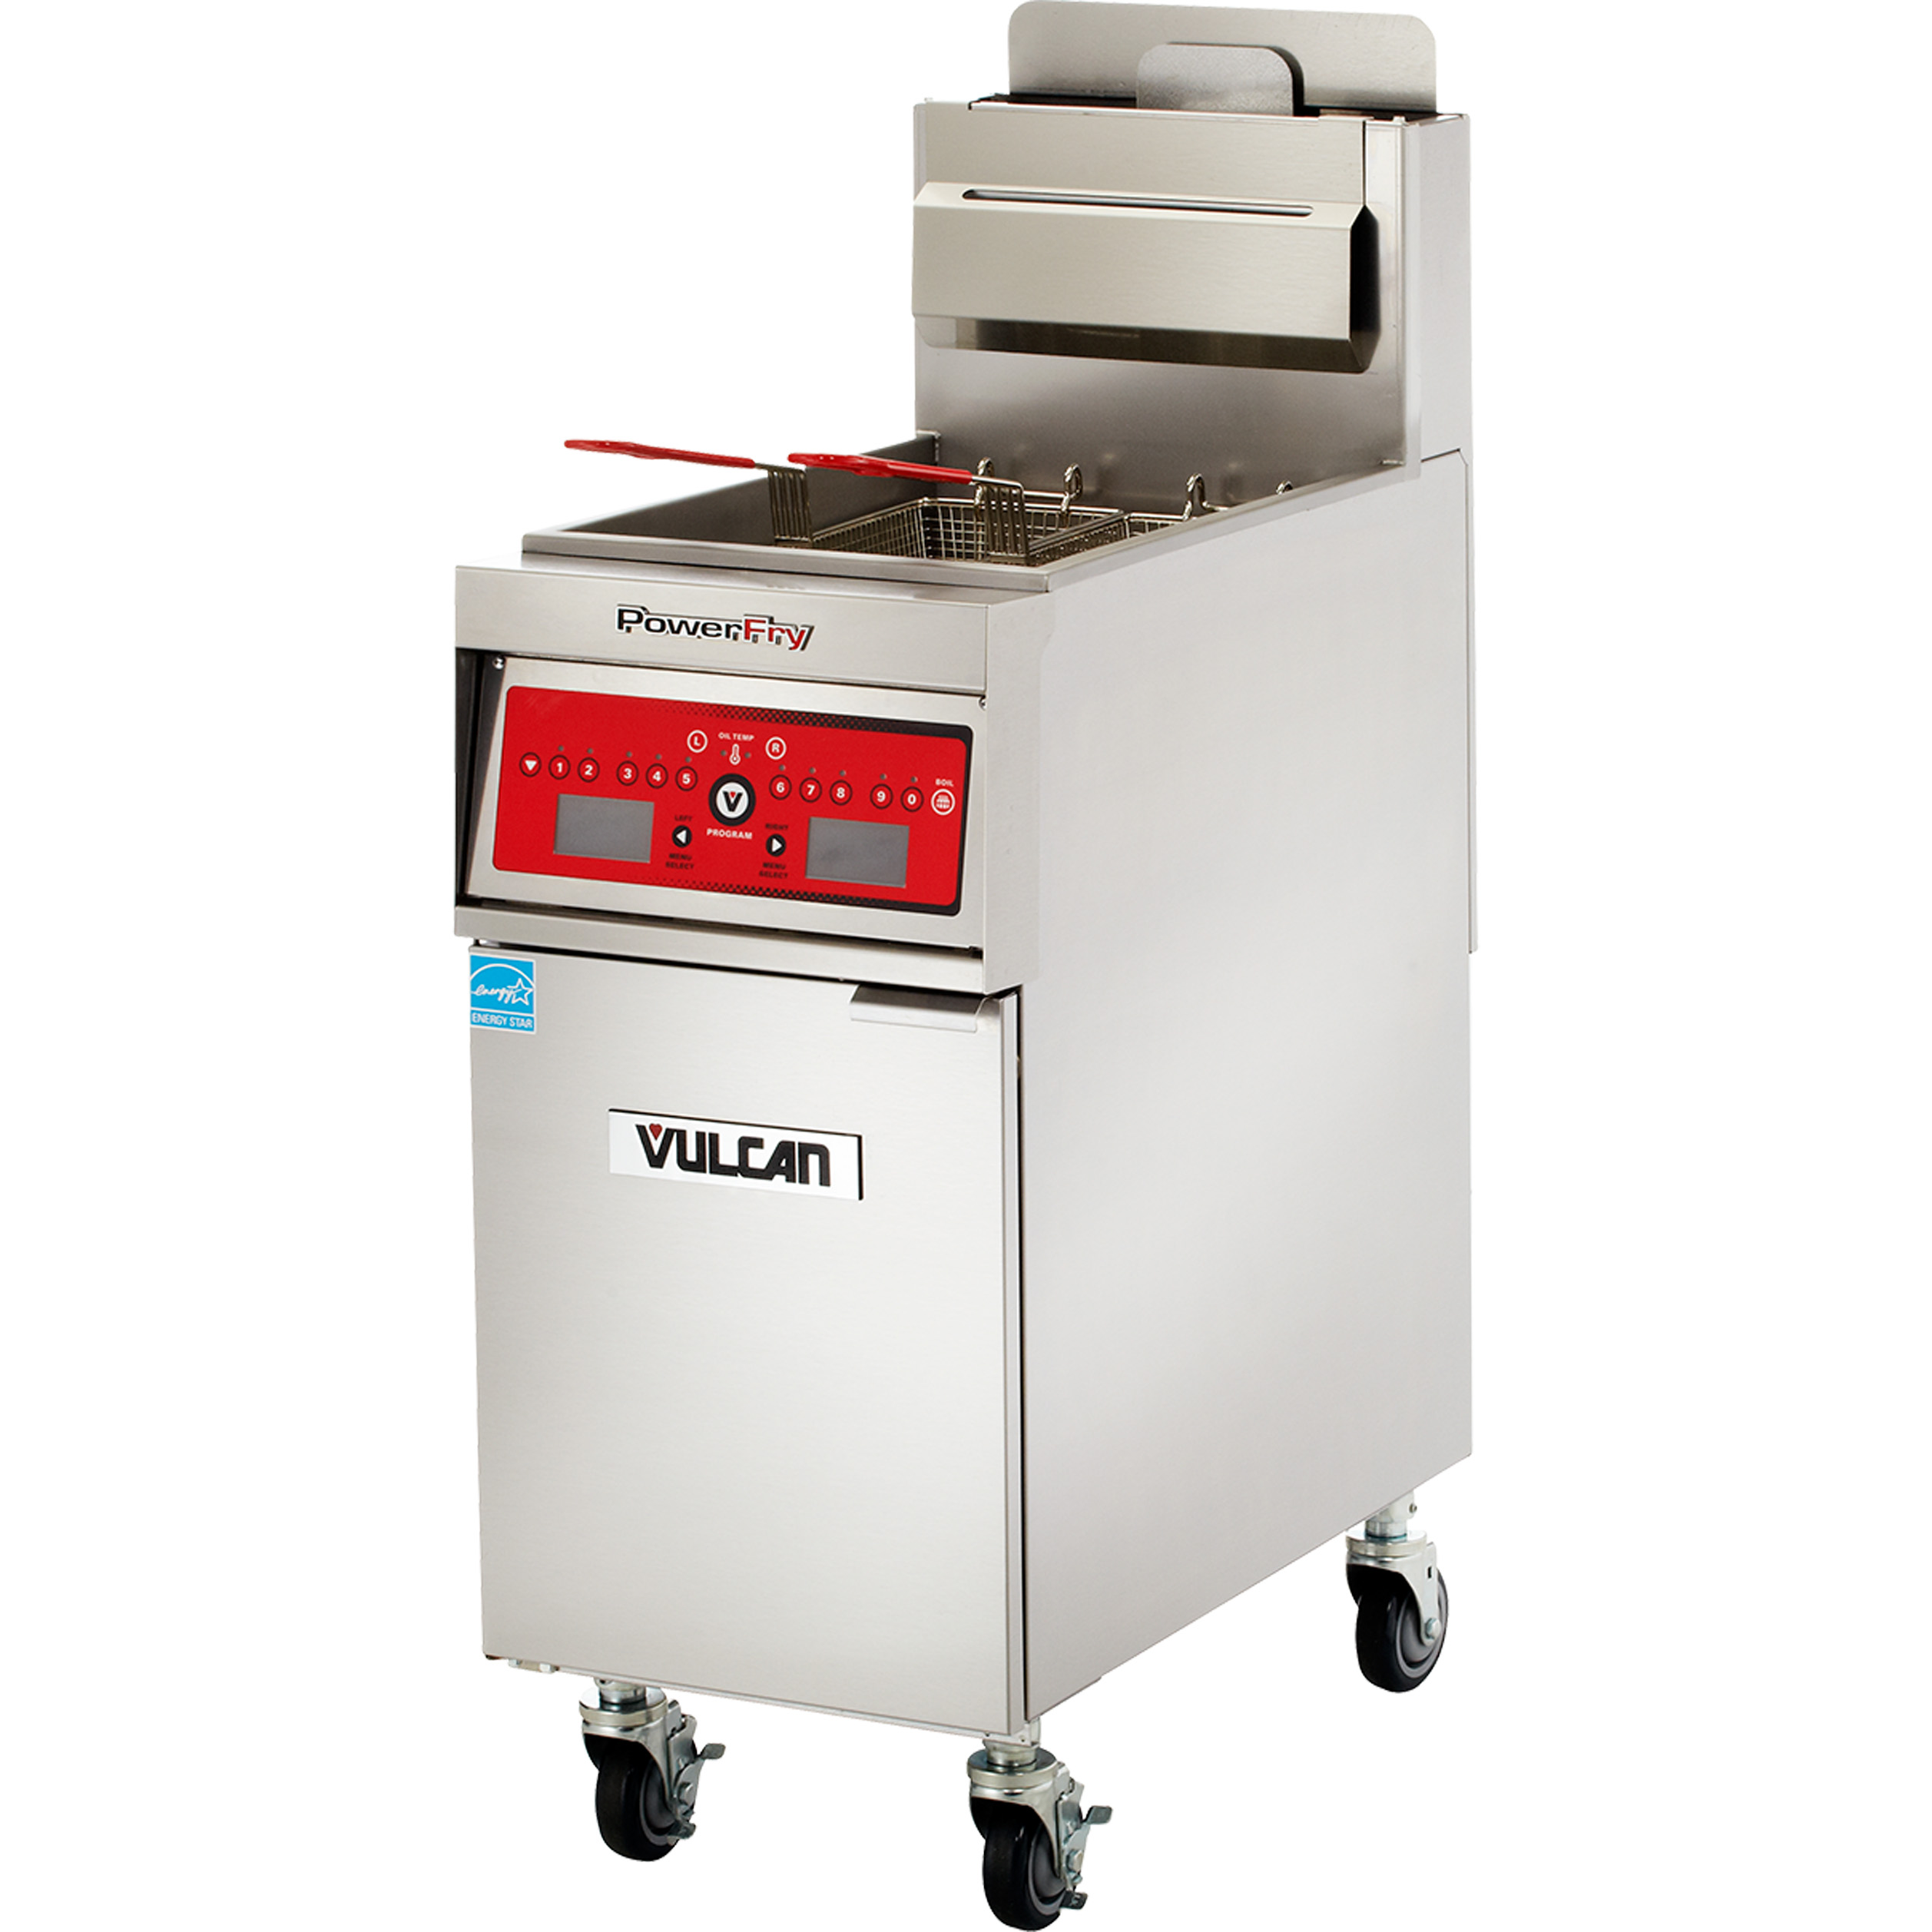 Vulcan 1VK85AF fryer, gas, floor model, full pot